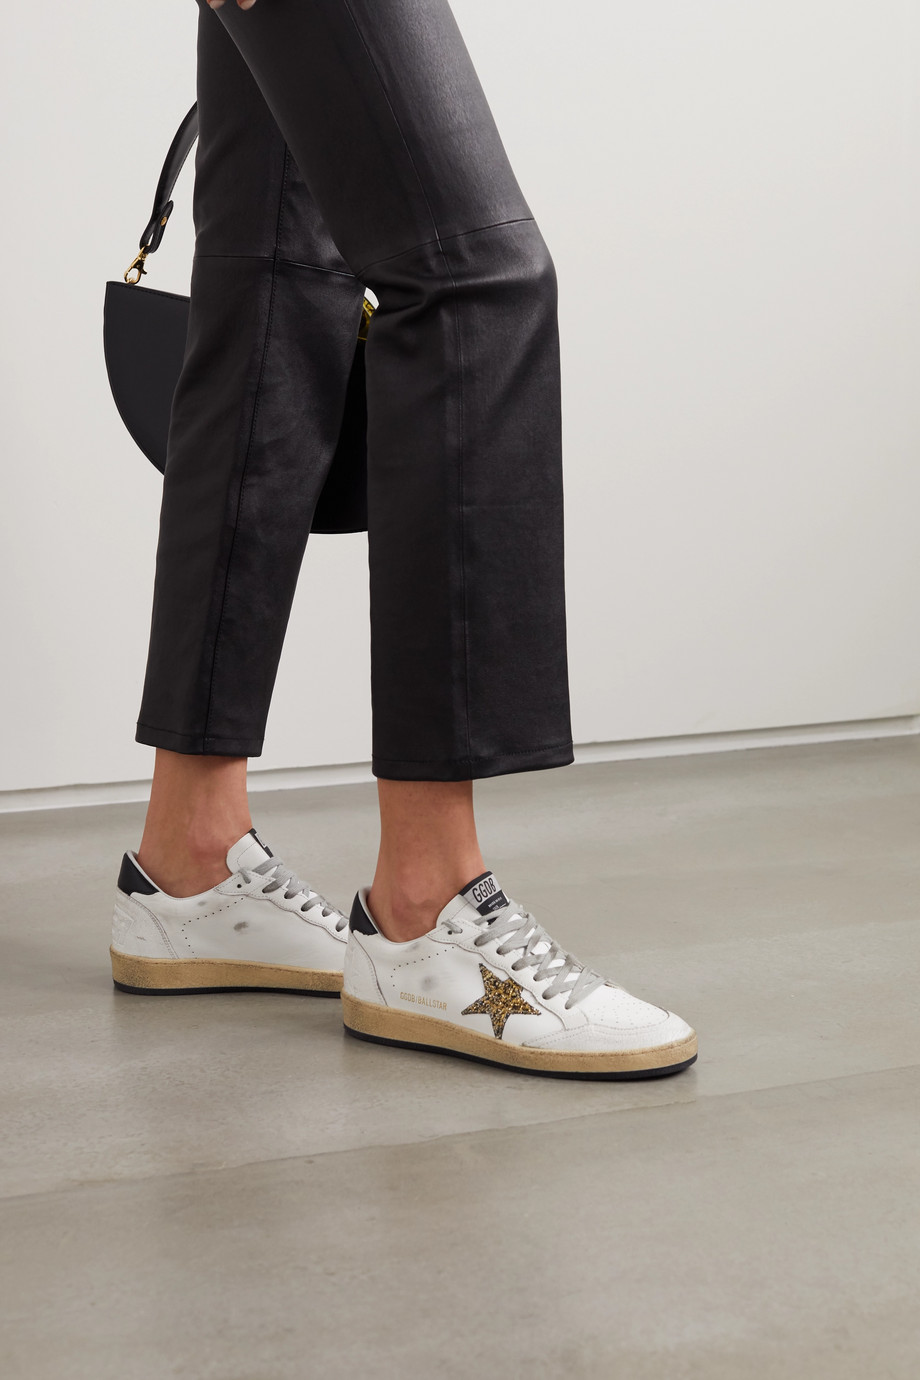 Golden Goose Ball Star glittered distressed leather sneakers